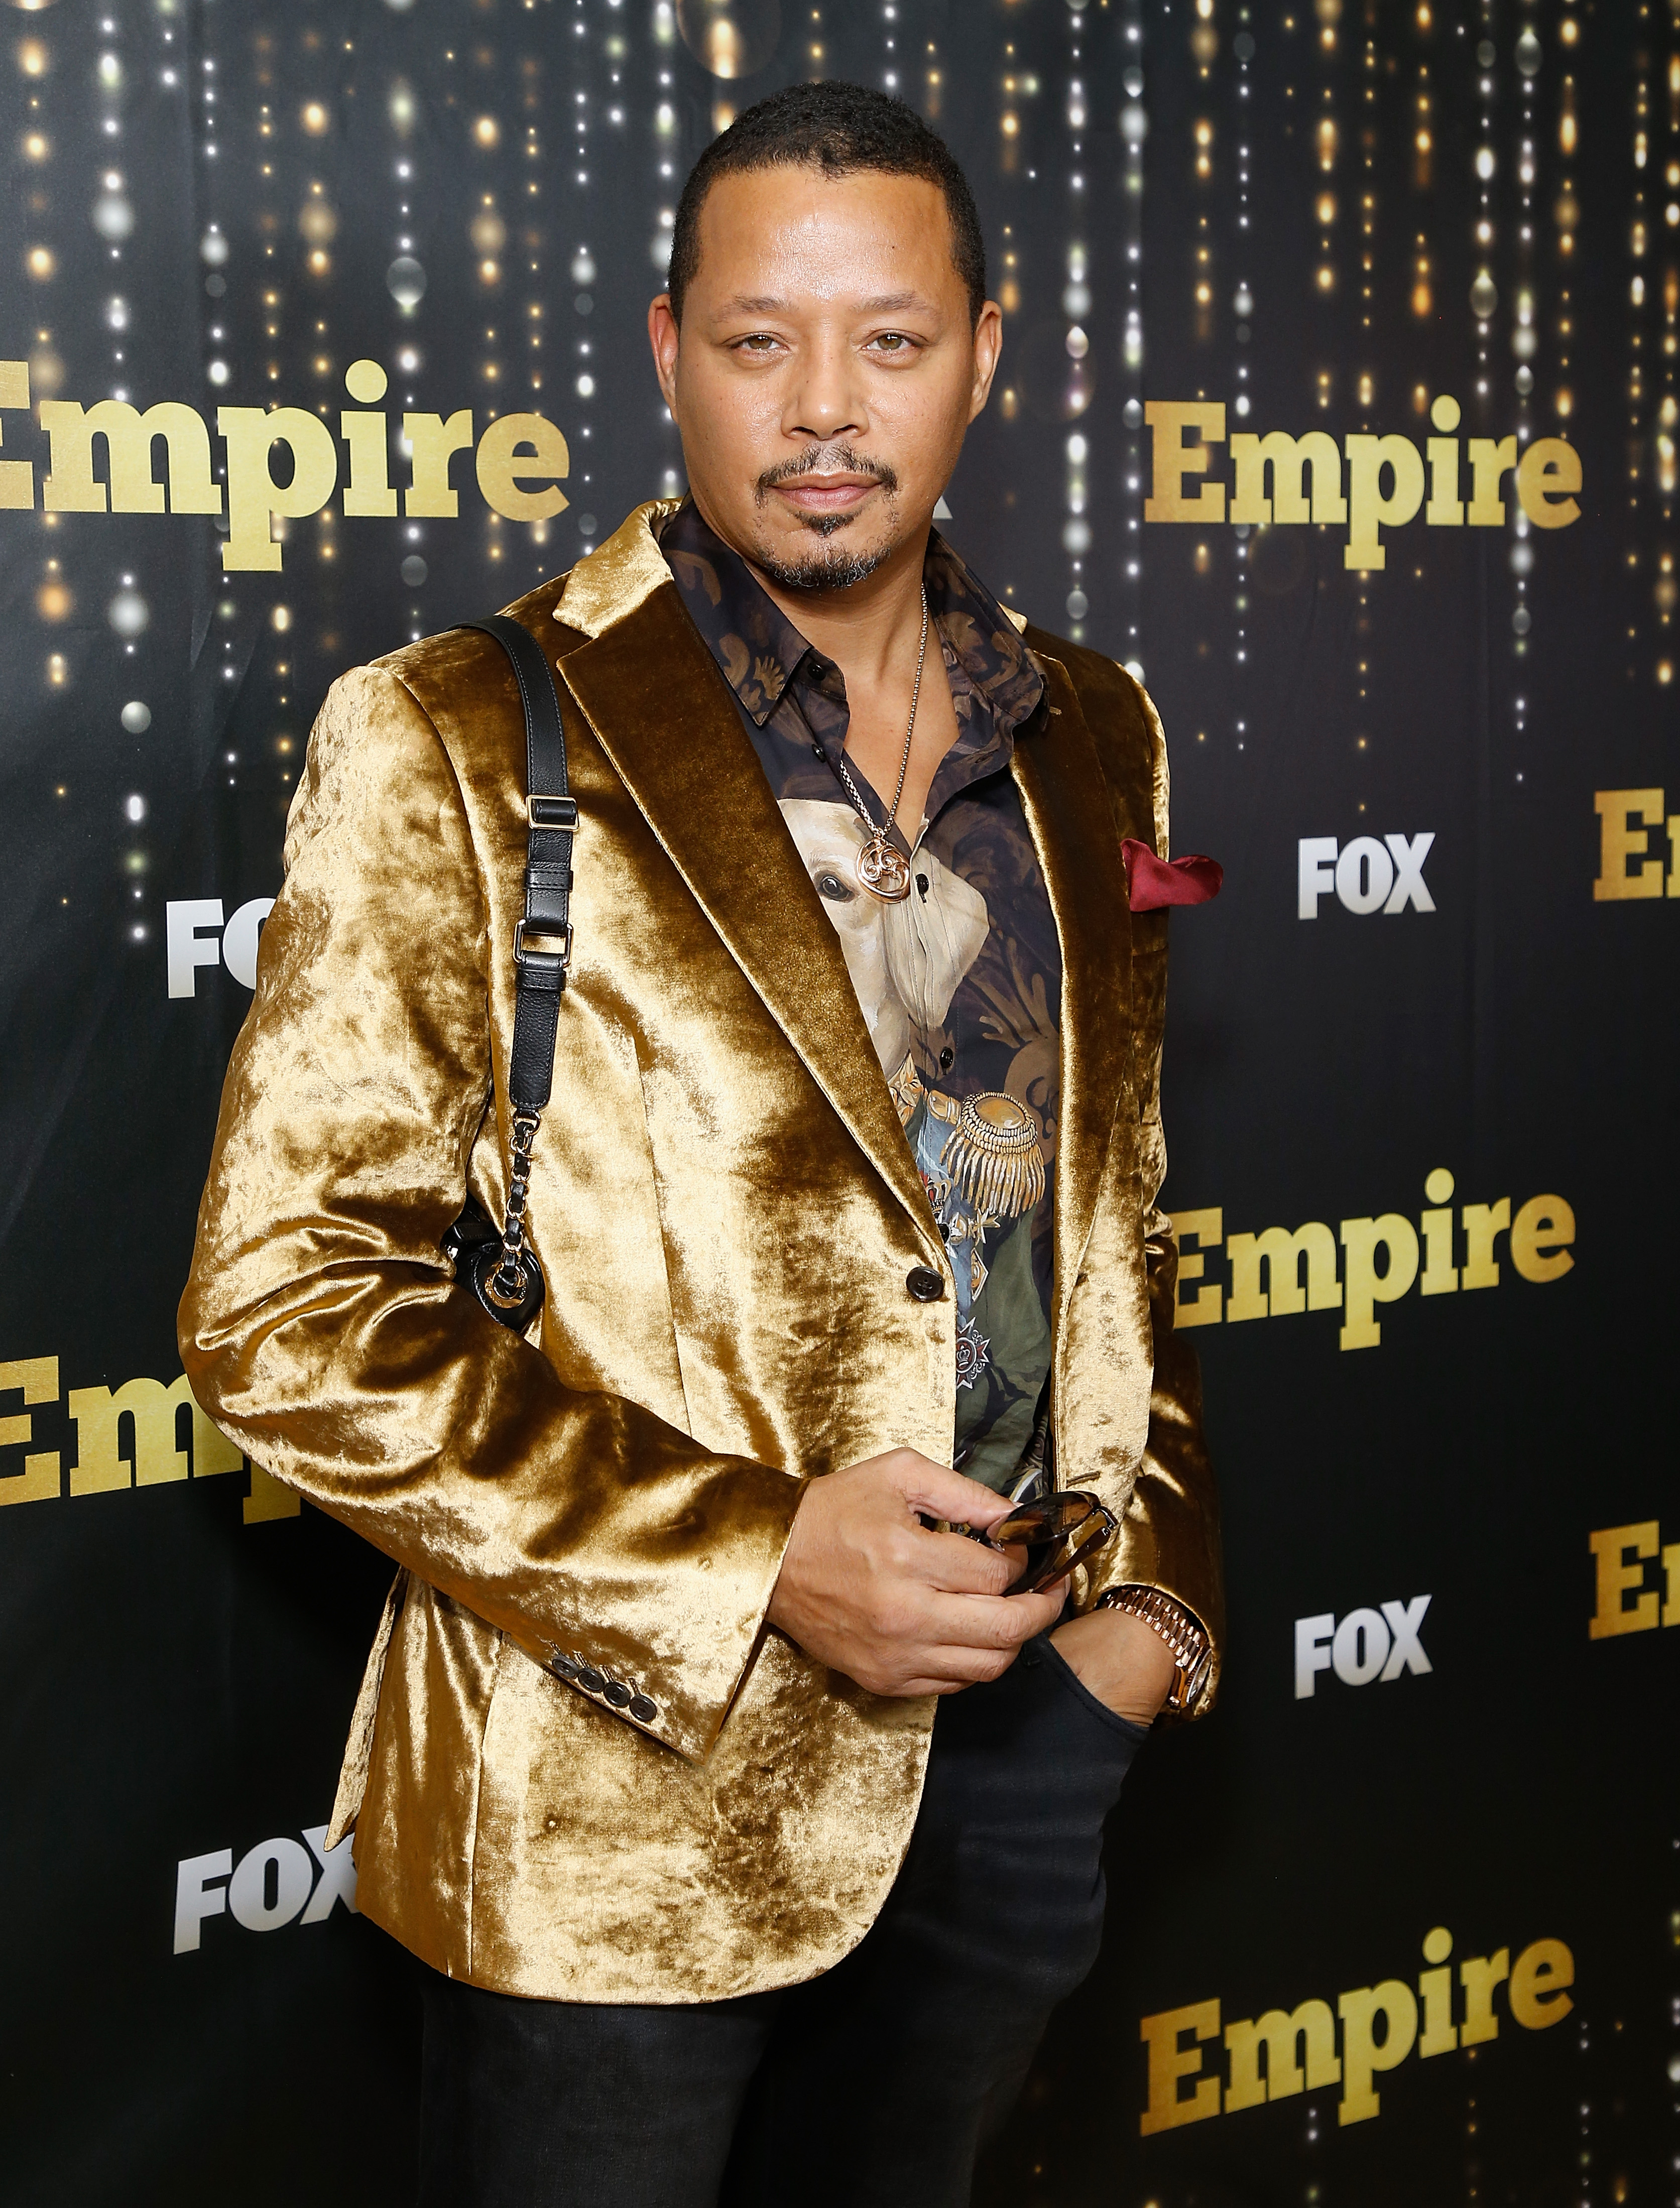 Terrence Howard at an event for Empire (2015)